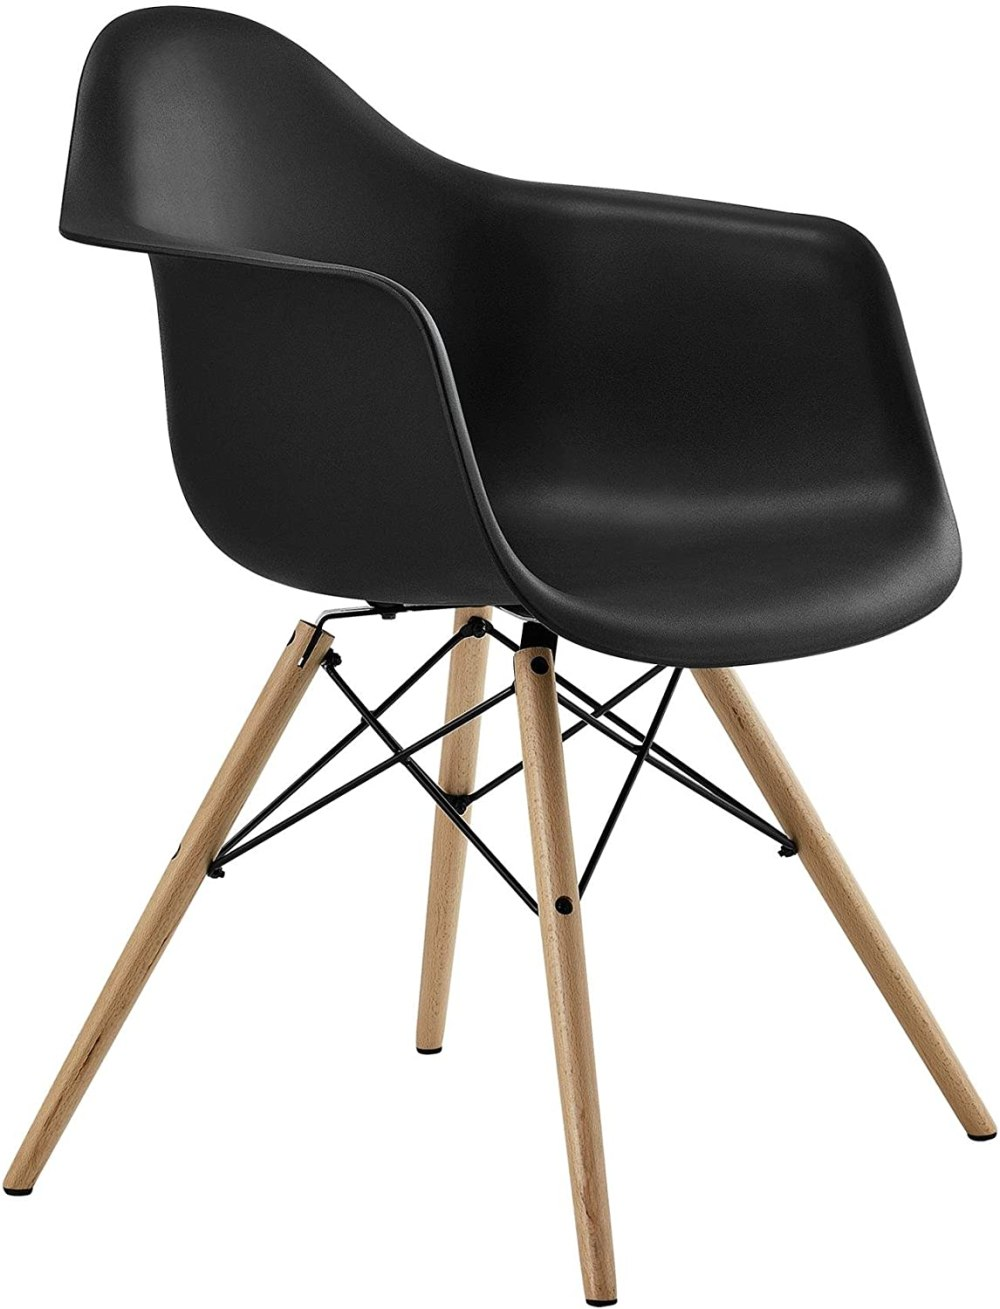 Mid Century Modern Chair with Molded Arms and Wood Legs, Black